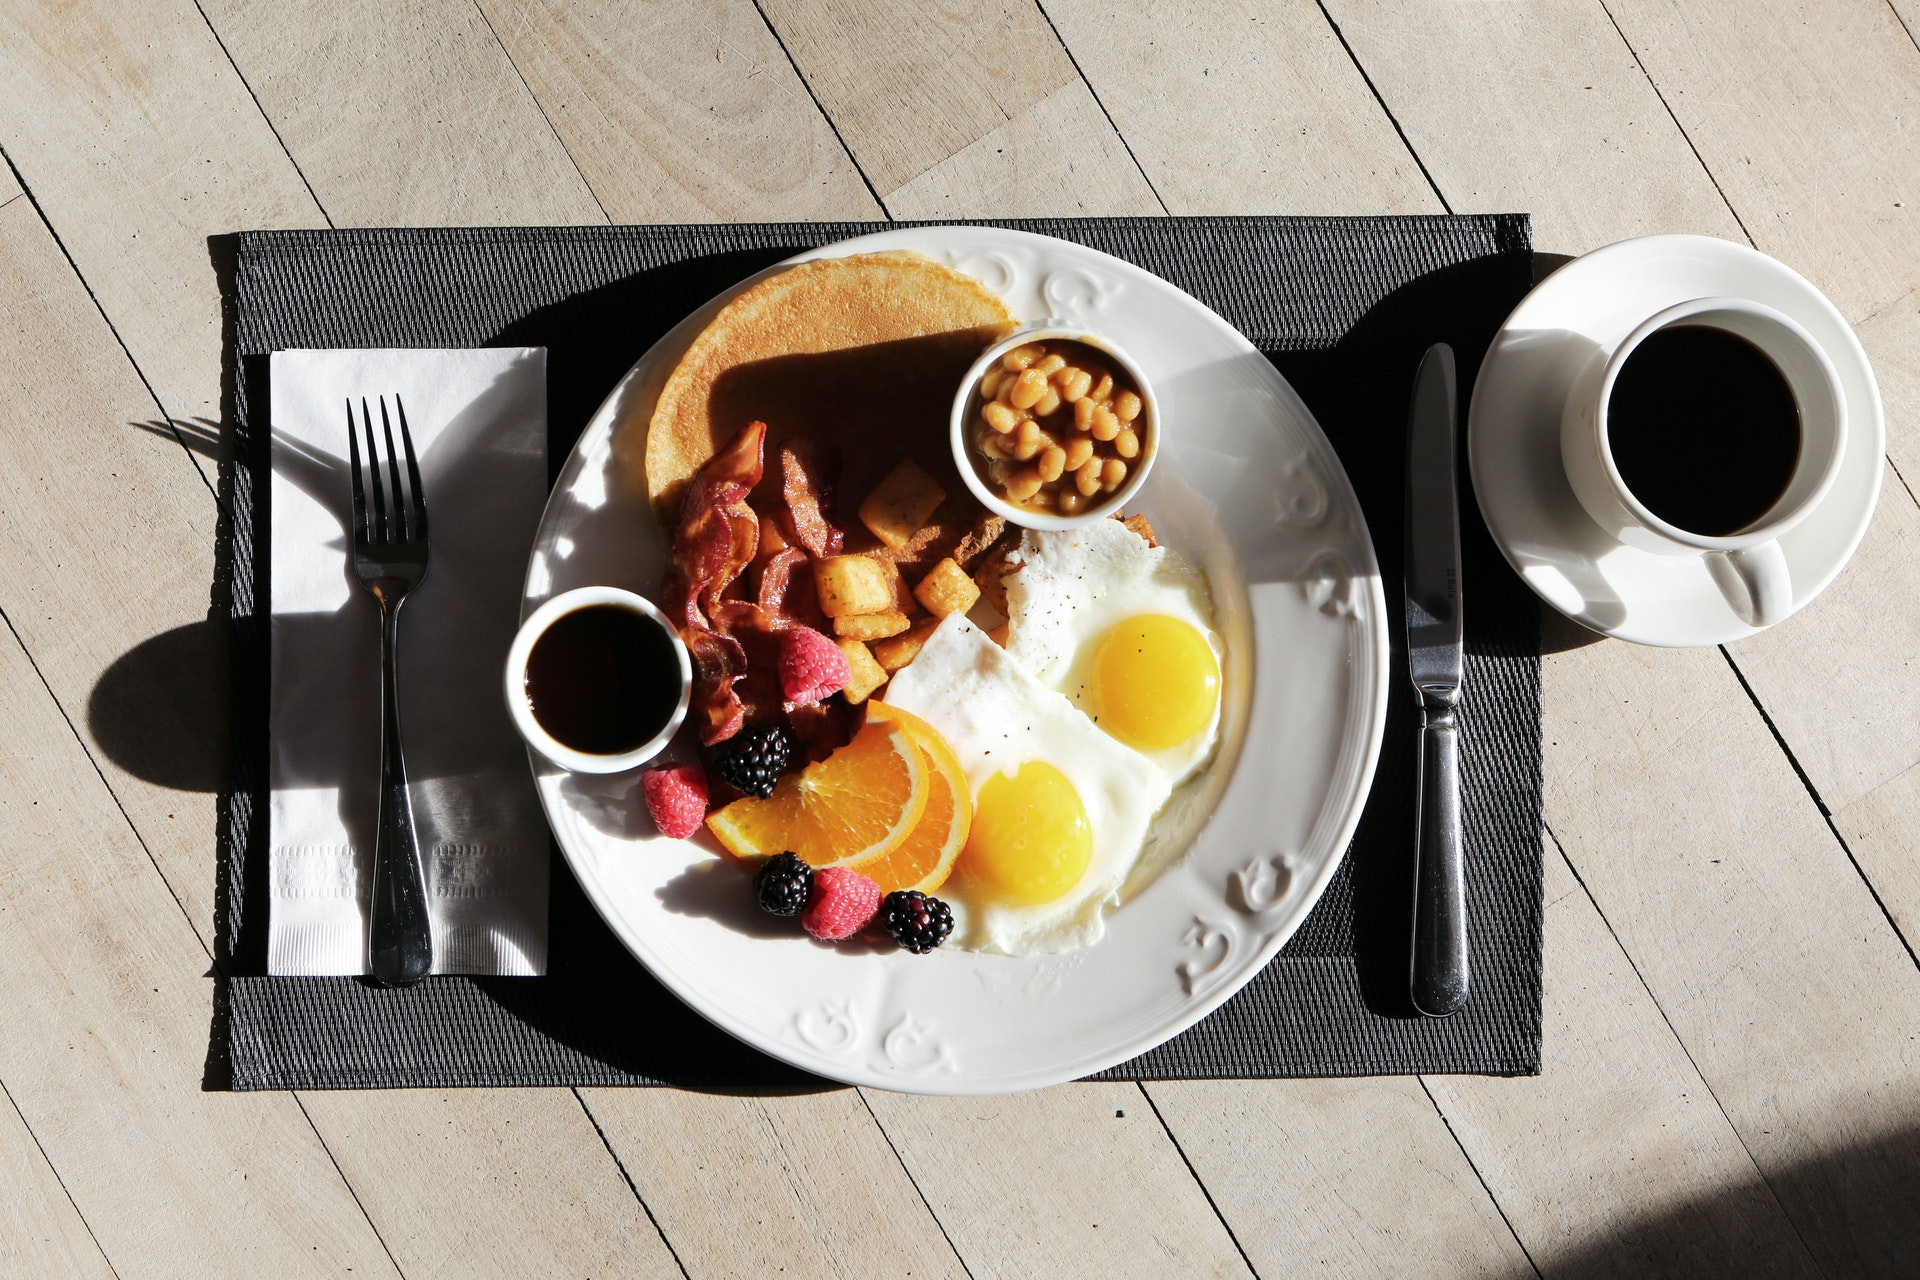 a plate of sunny side ups, baked beans, pancakes